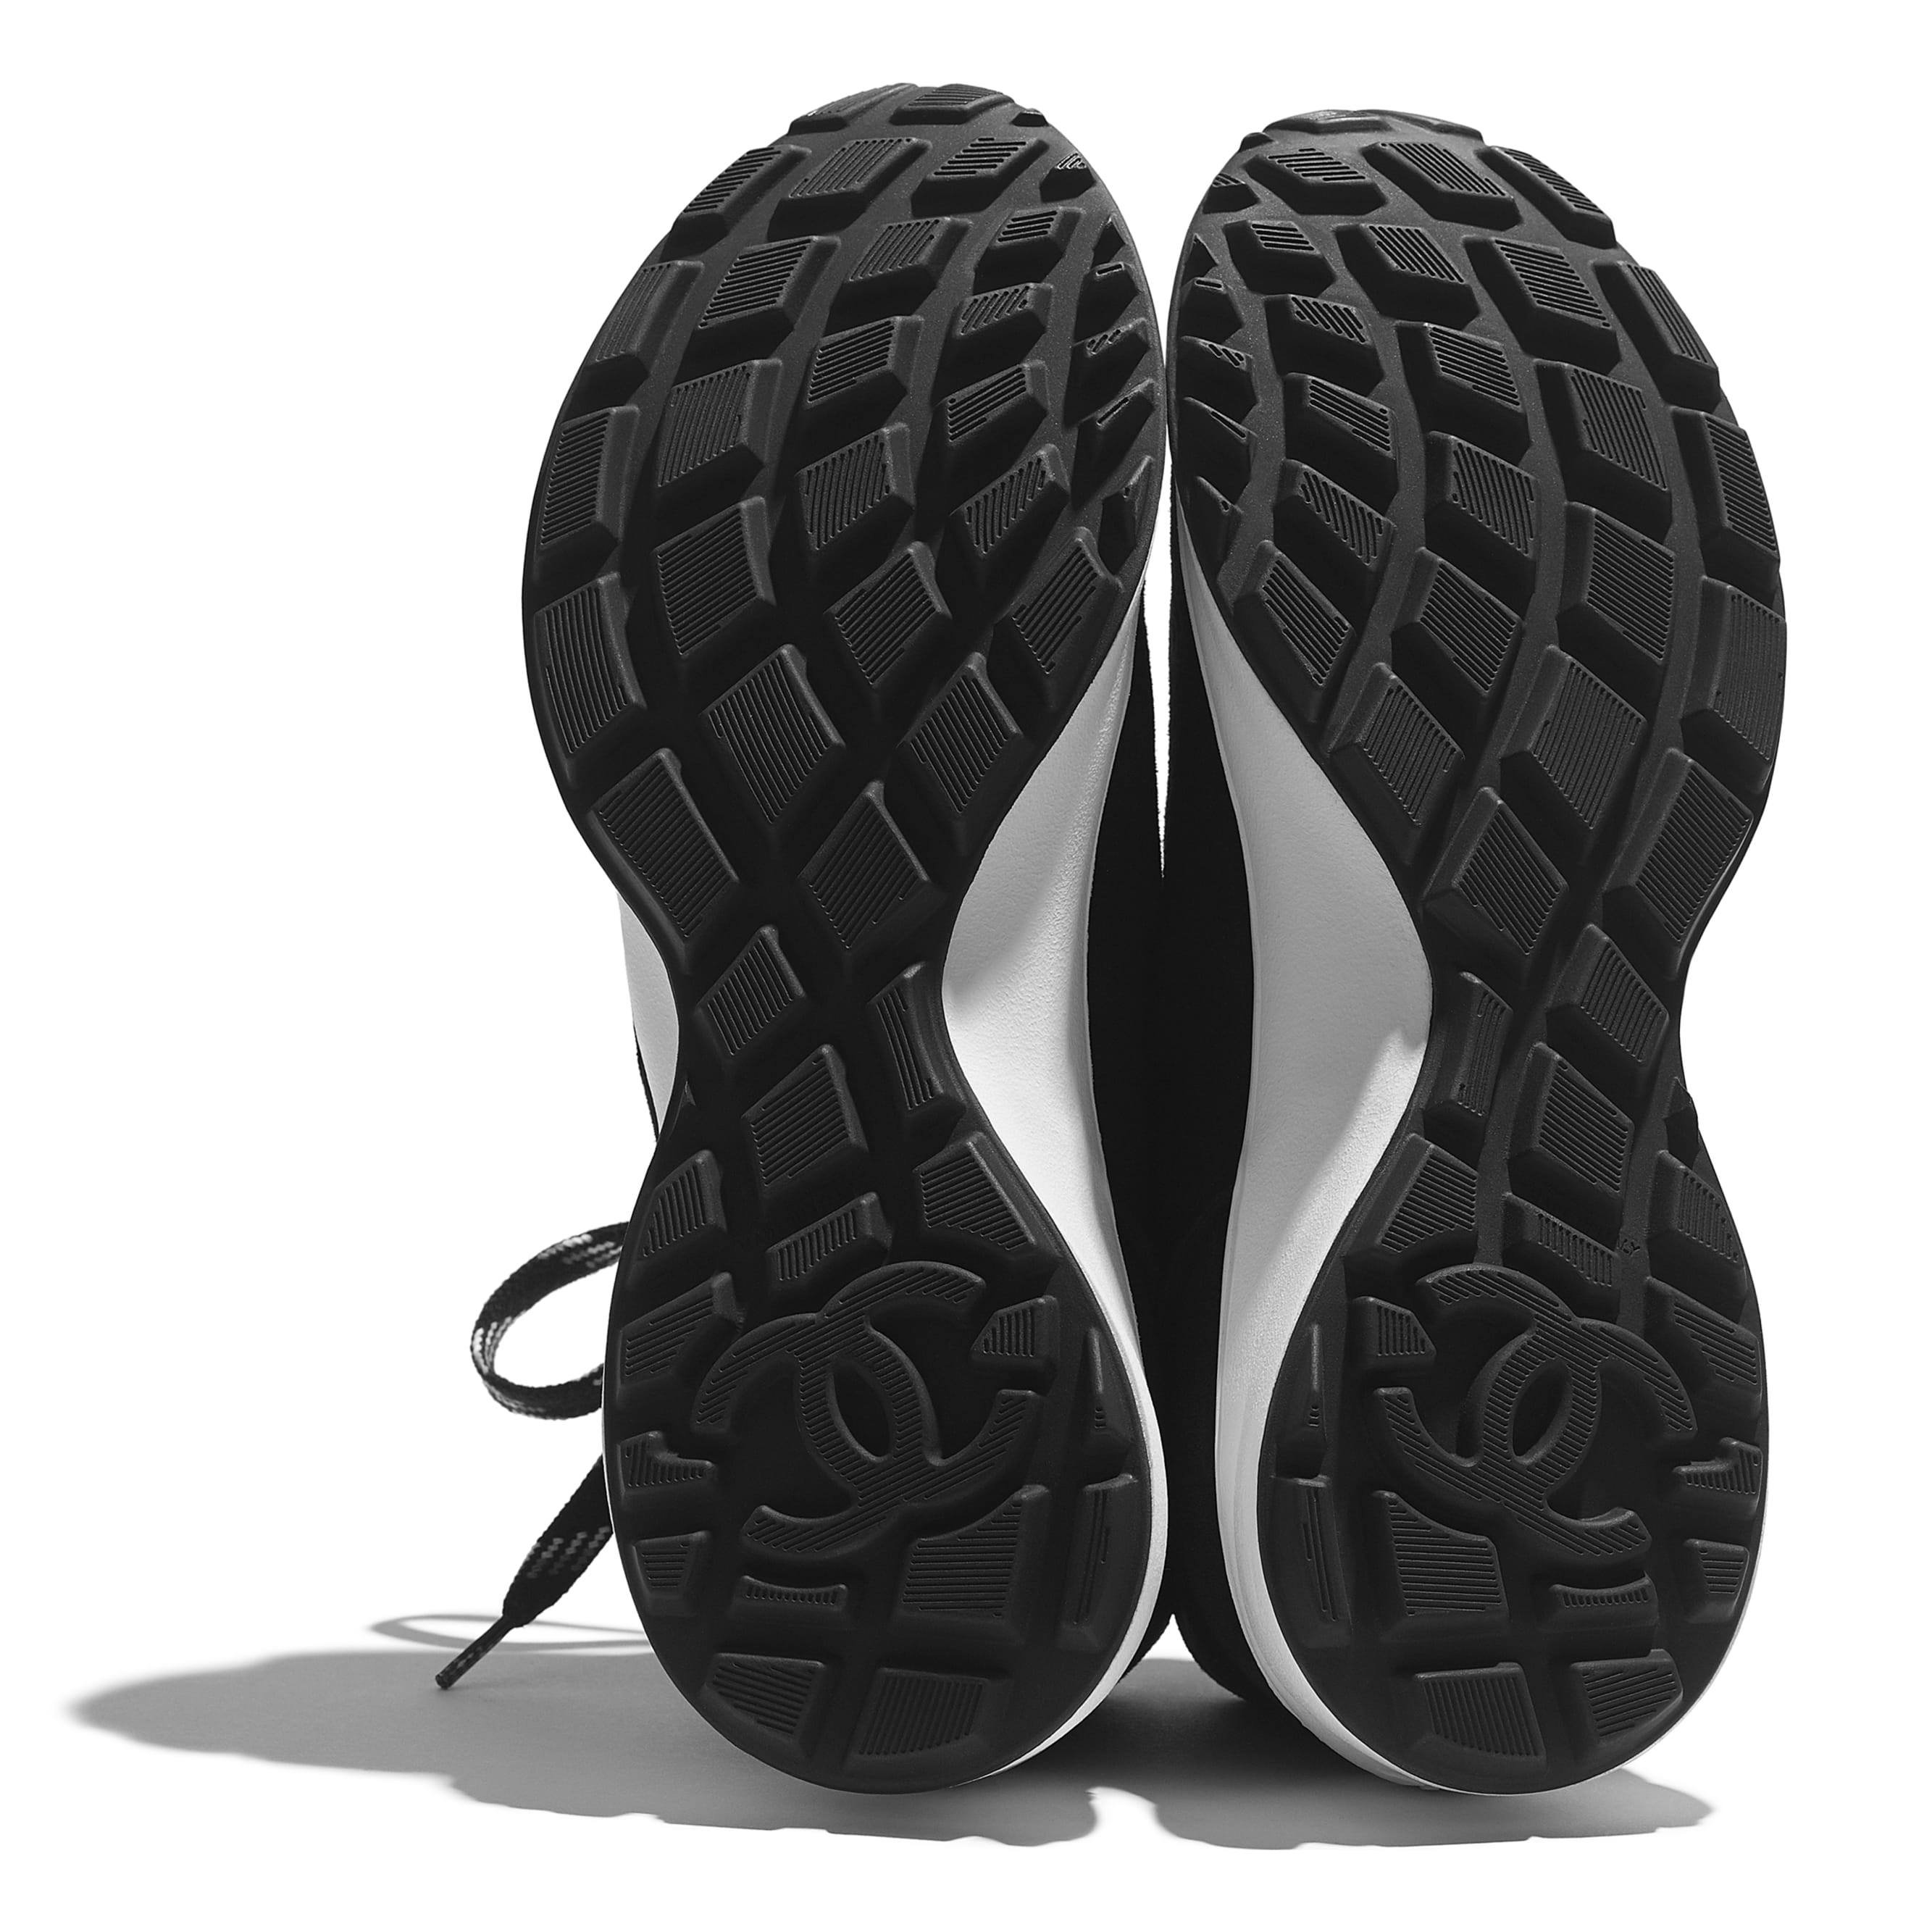 Trainers - Black - Suede Goatskin - CHANEL - Extra view - see standard sized version